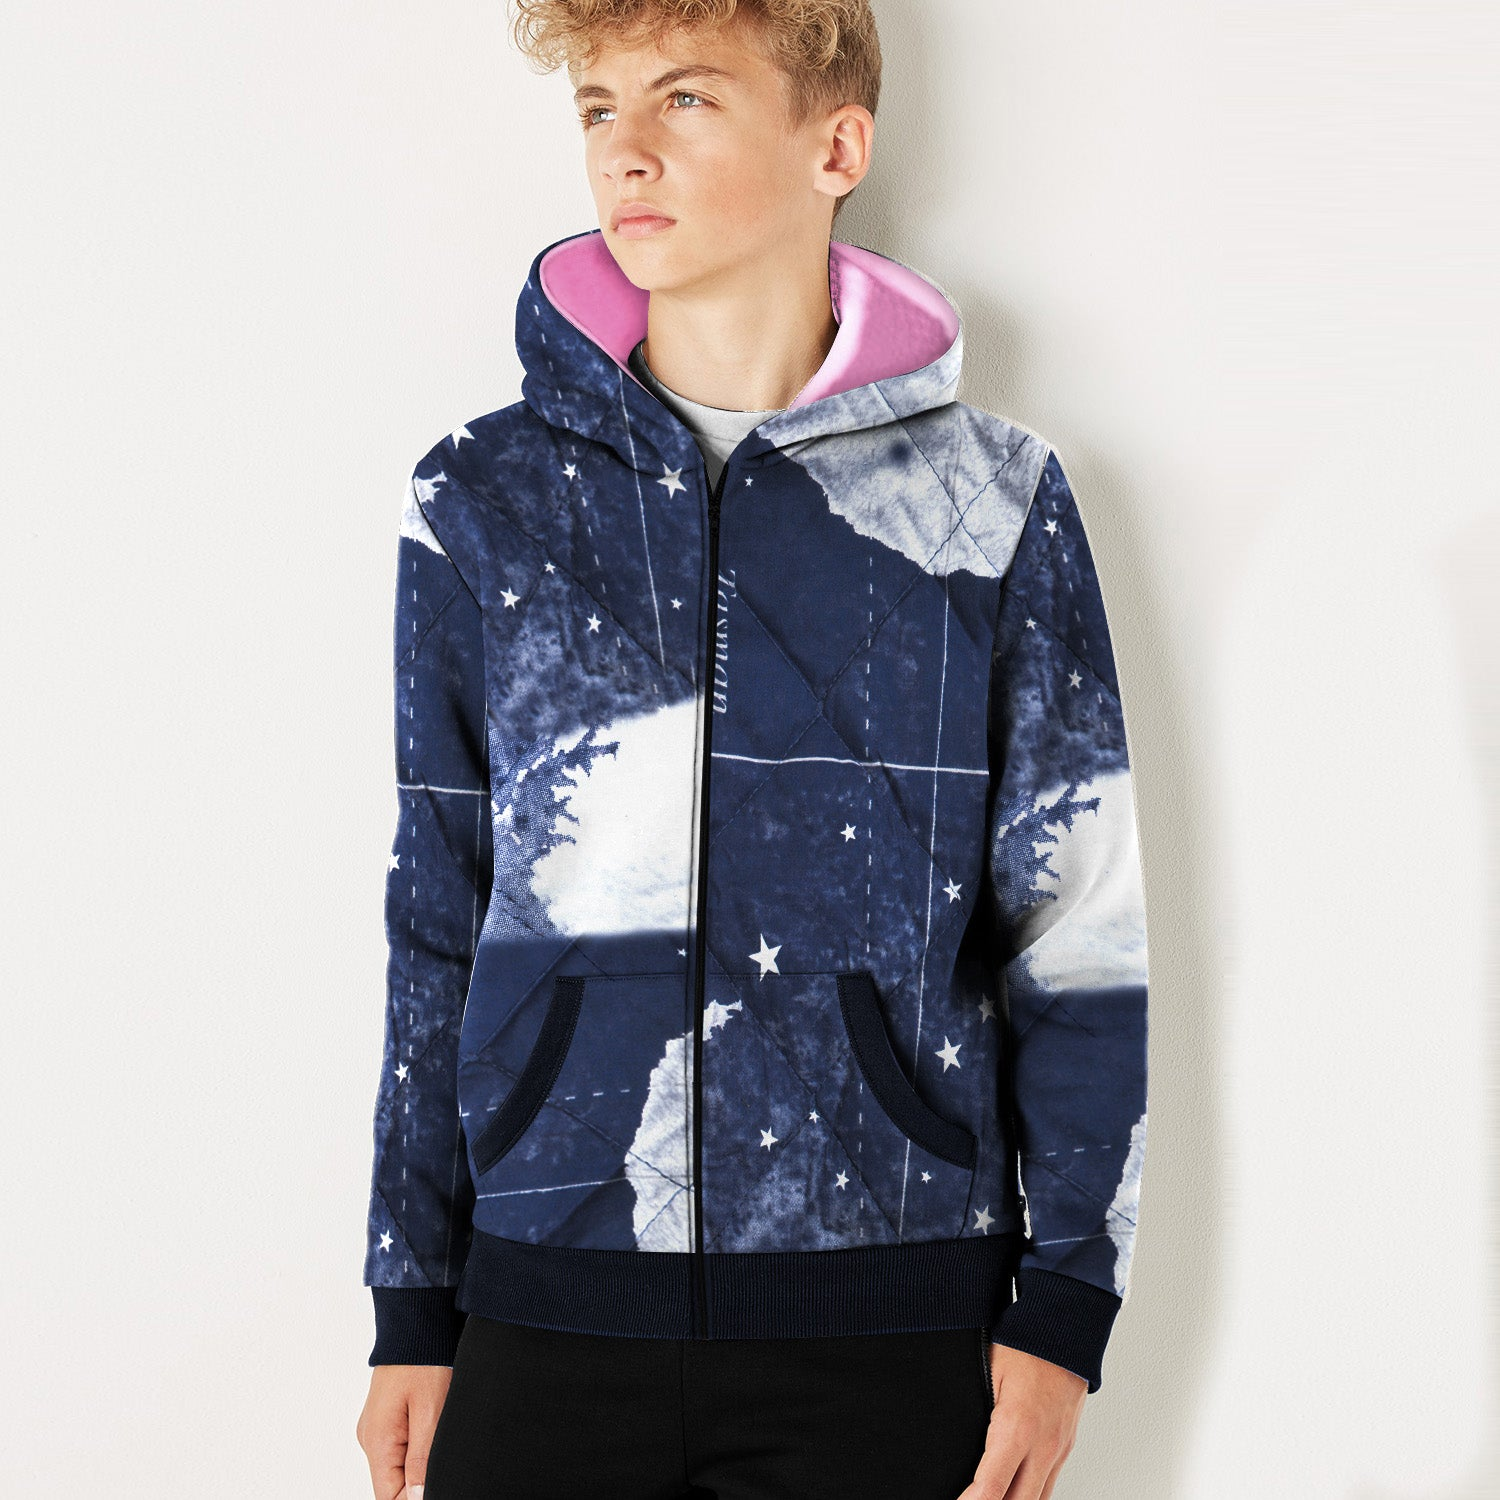 Tommy Hilfiger Quilted Zipper Hoodie For Kids-Navy & White Allover Print-BE10988